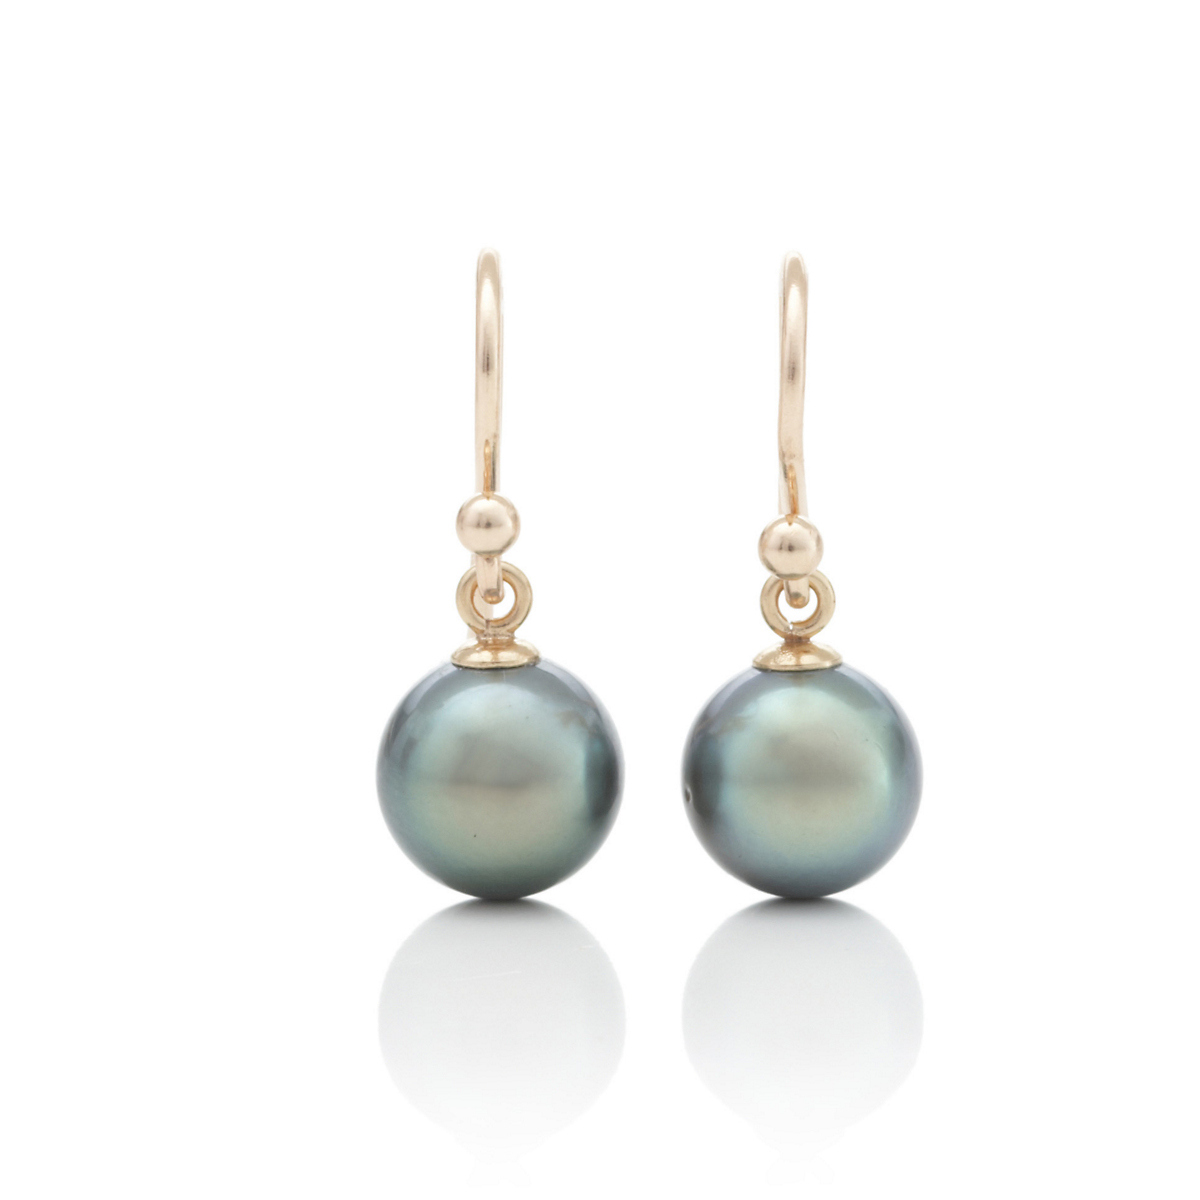 Gump's Green Tahitian South Sea Pearl Drop Earrings